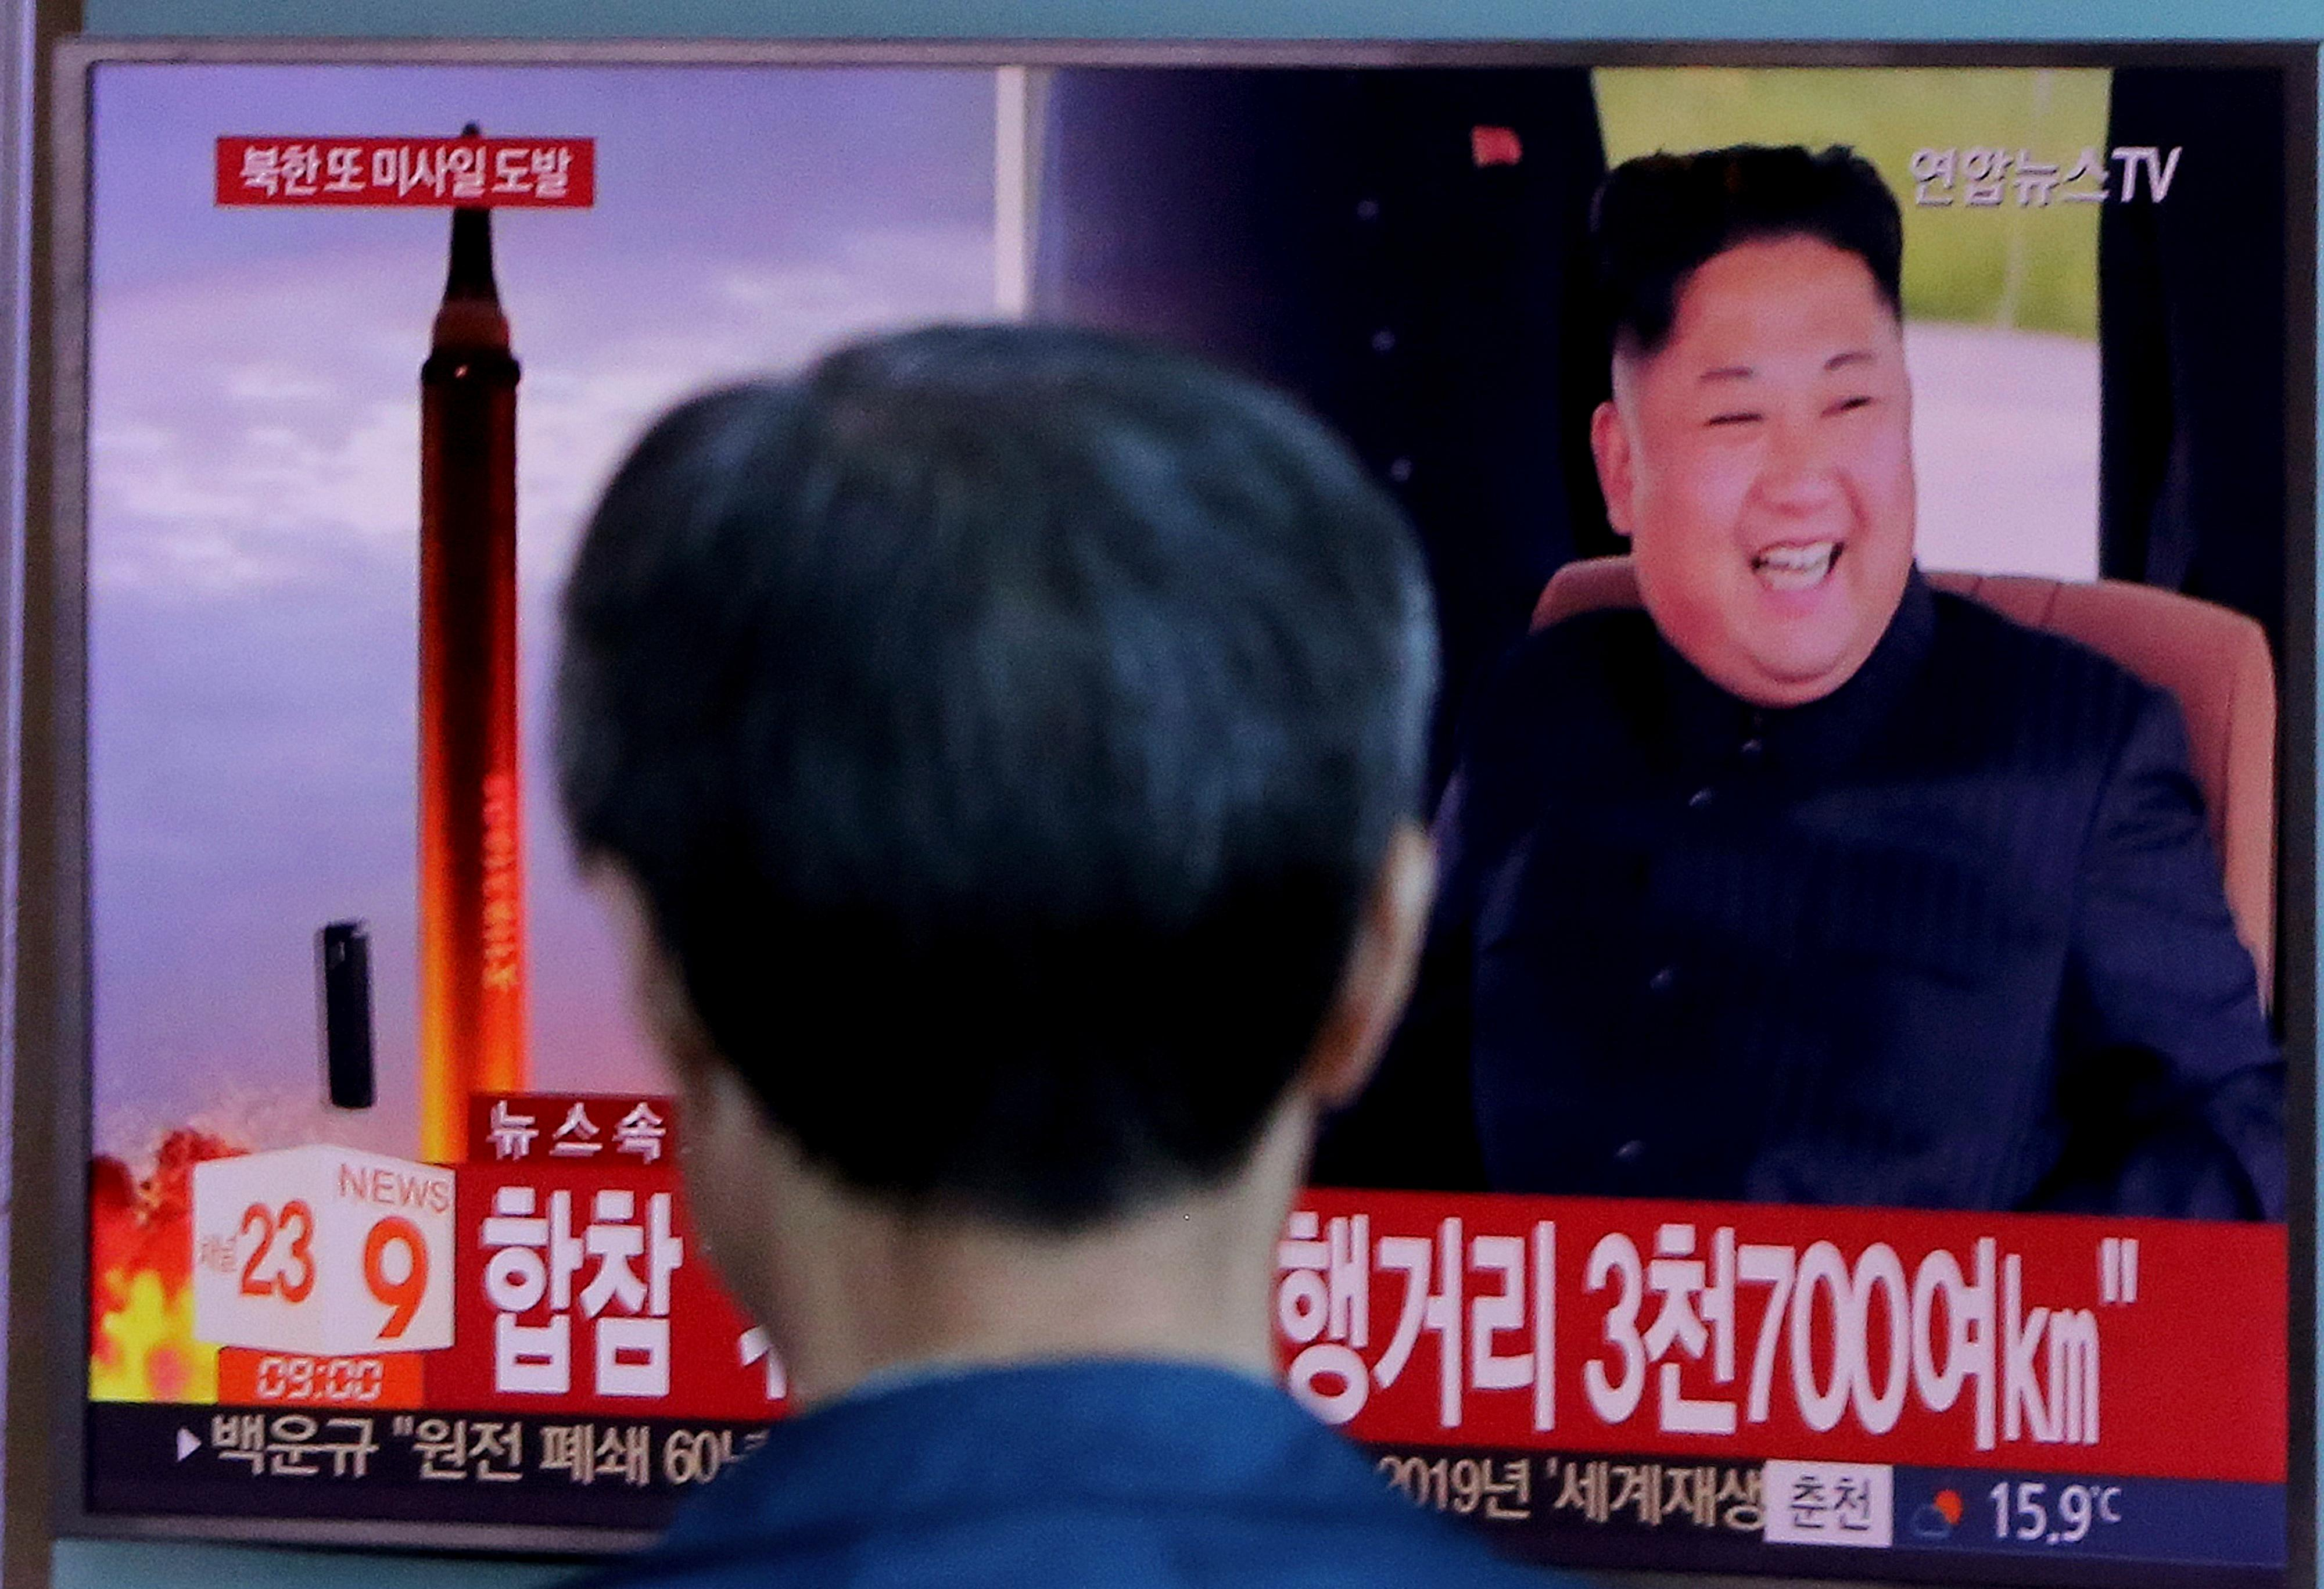 "A man watches a TV screen showing a file footage of North Korea's missile launch and North Korean leader Kim Jong Un, at the Seoul Railway Station in Seoul, South Korea, Friday, Sept. 15, 2017. South Korea's military said North Korea fired an unidentified missile Friday from its capital Pyongyang that flew over Japan before landing in the northern Pacific Ocean. The signs read ""South Korea's Joint Chiefs of Staff said the missile traveled about 3,700 kilometers."" (AP Photo/Ahn Young-joon)"